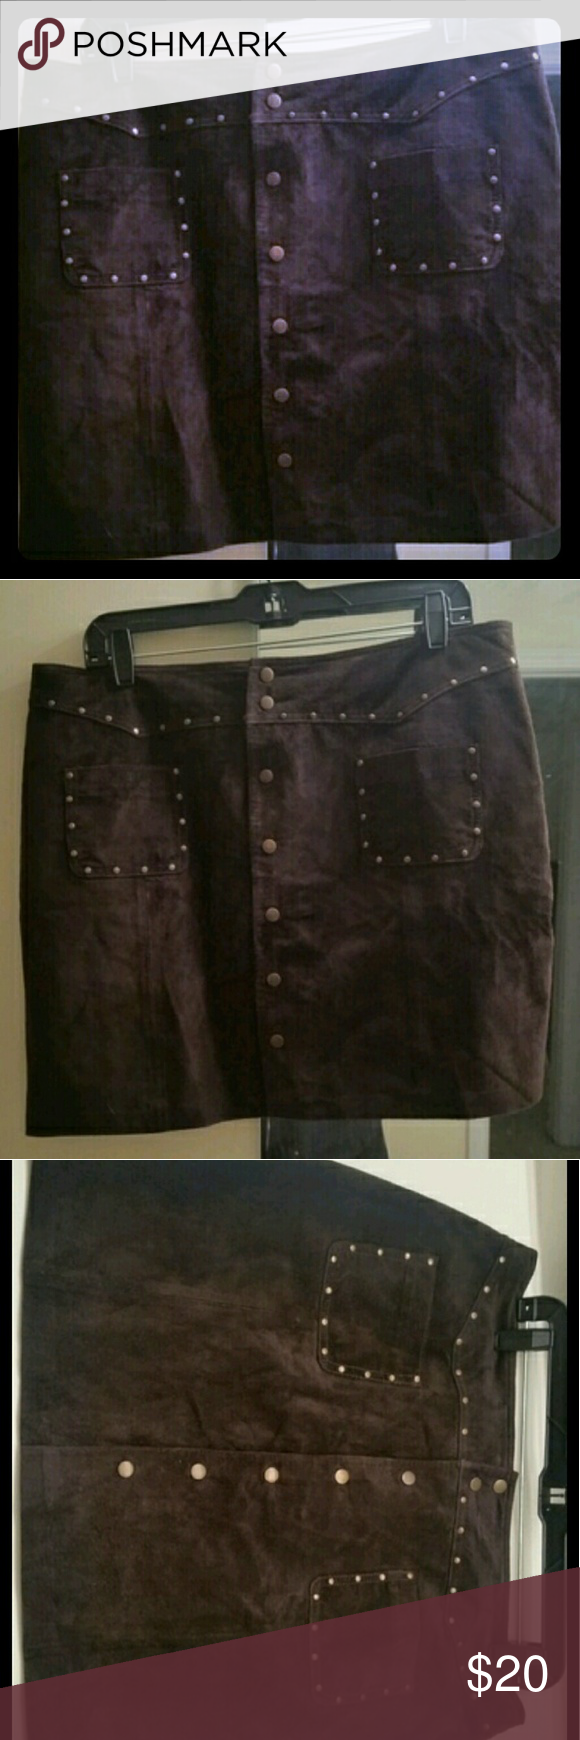 Brown leather mini skirt According to the tag this is a real leather, suede feeling mini skirt size 14. I wear a 14 and this wouldn't snap, so I think it fits more like a 12. unknown Skirts Mini